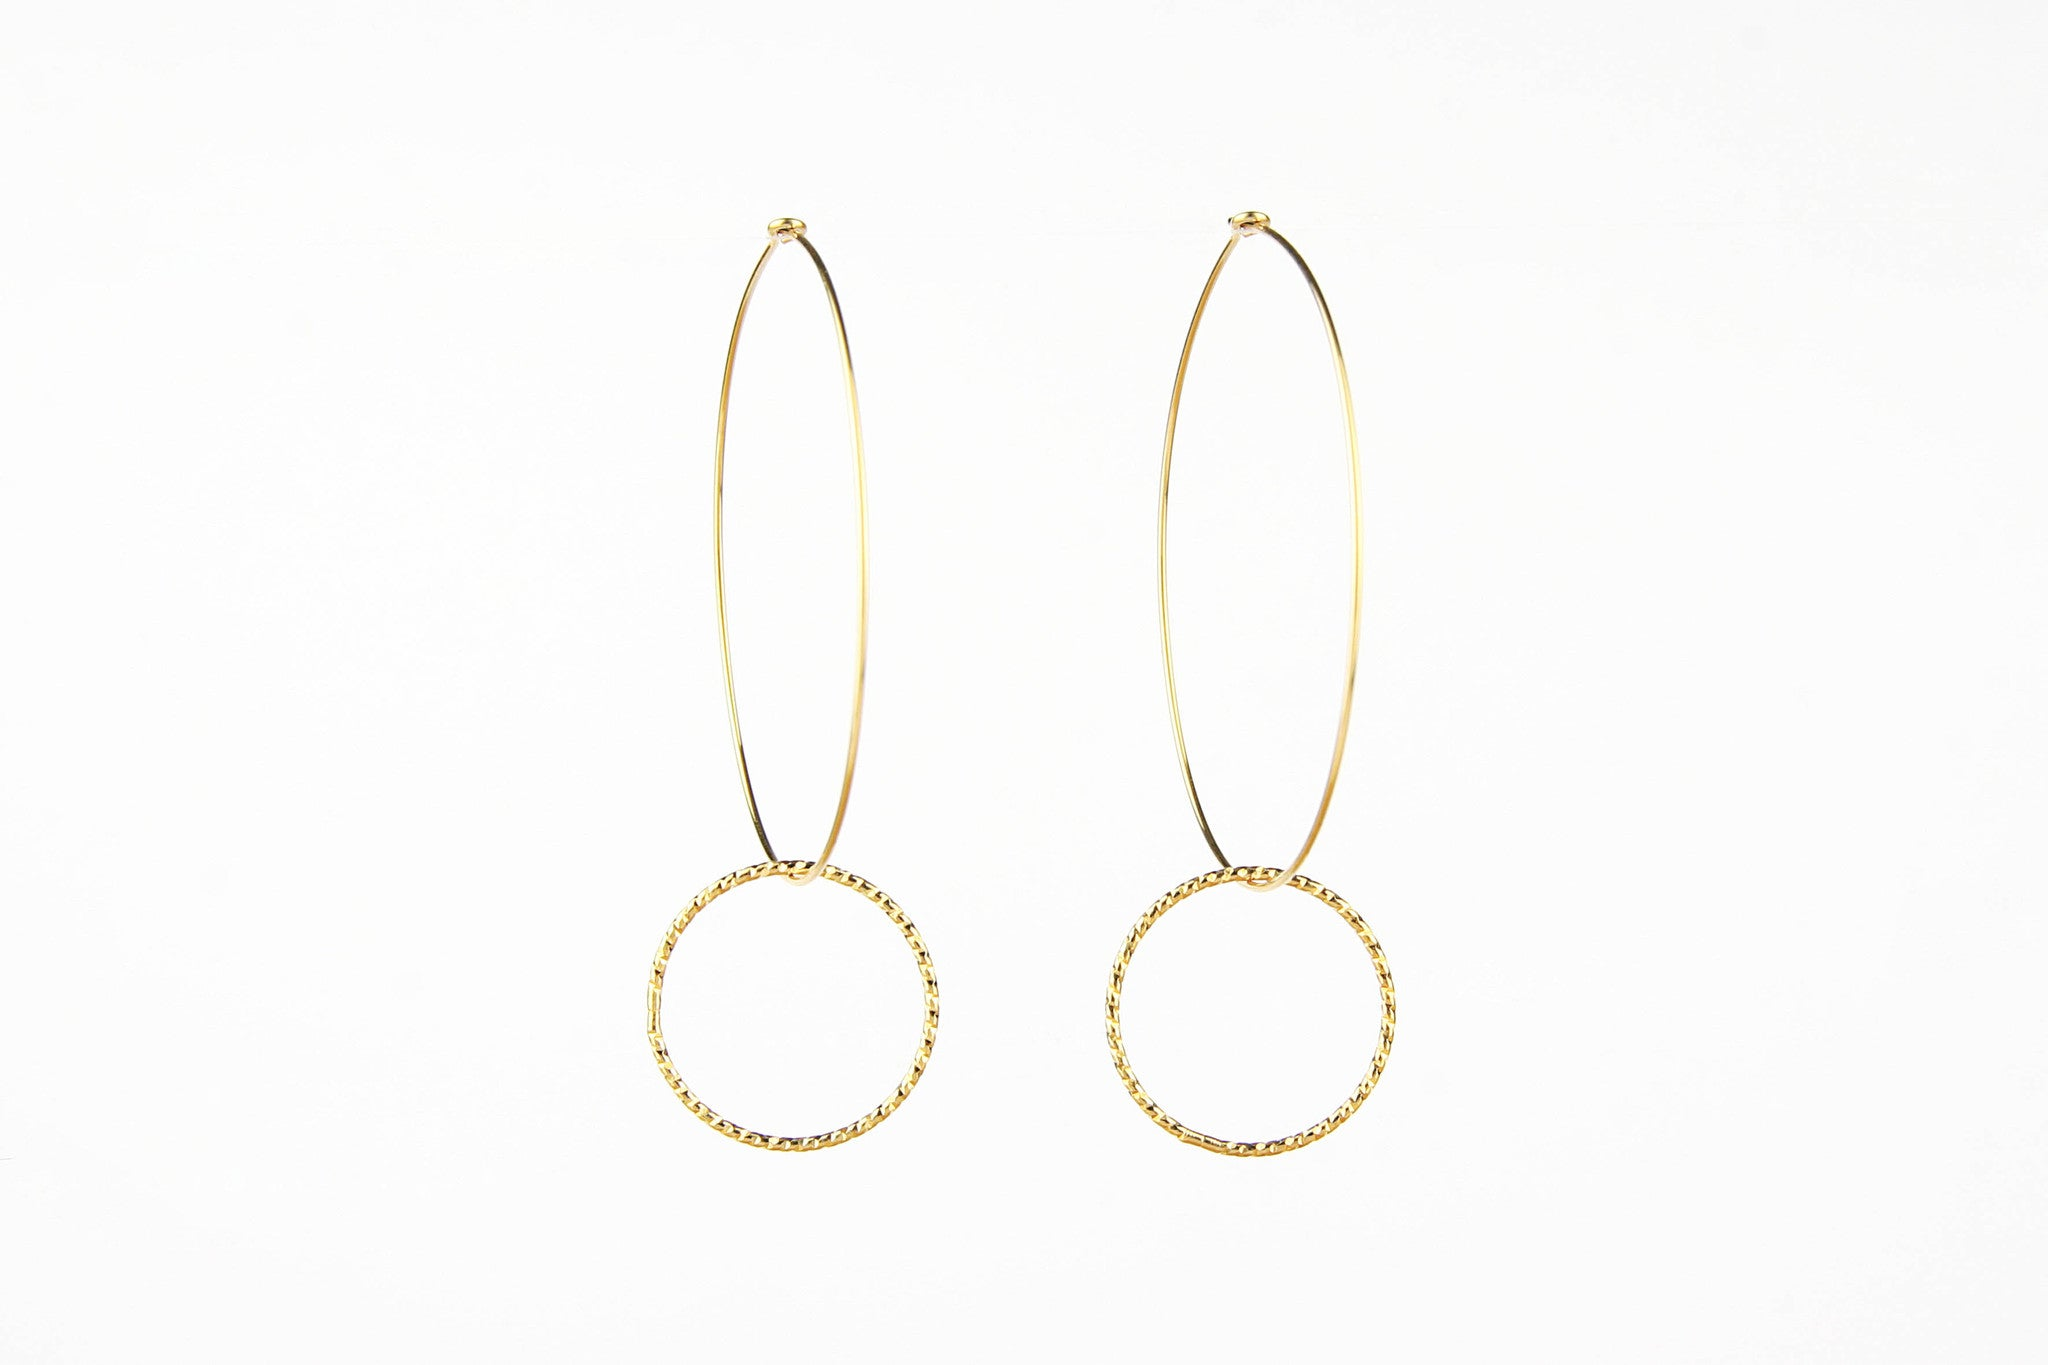 jewelberry ohrringe earrings shiny circle hoops yellow gold plated sterling silver fine jewelry handmade with love fairtrade